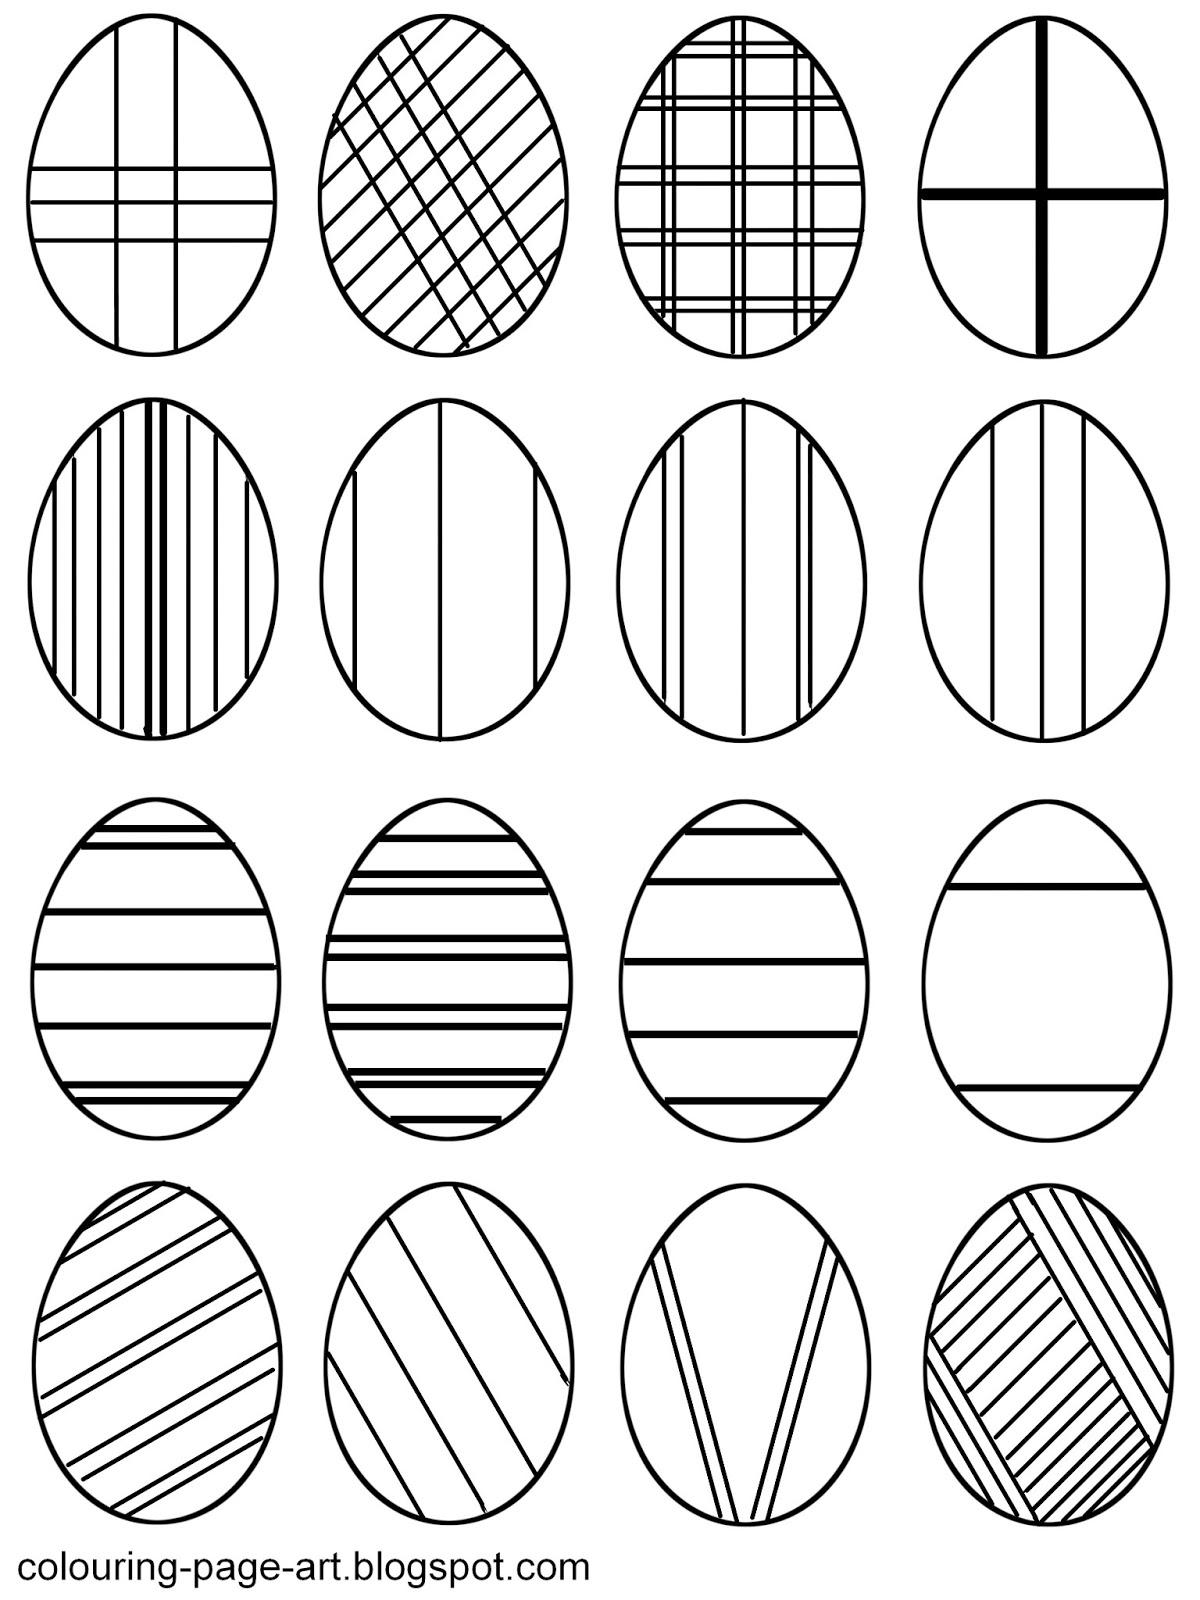 Easter Egg Designs Coloring Pages #10